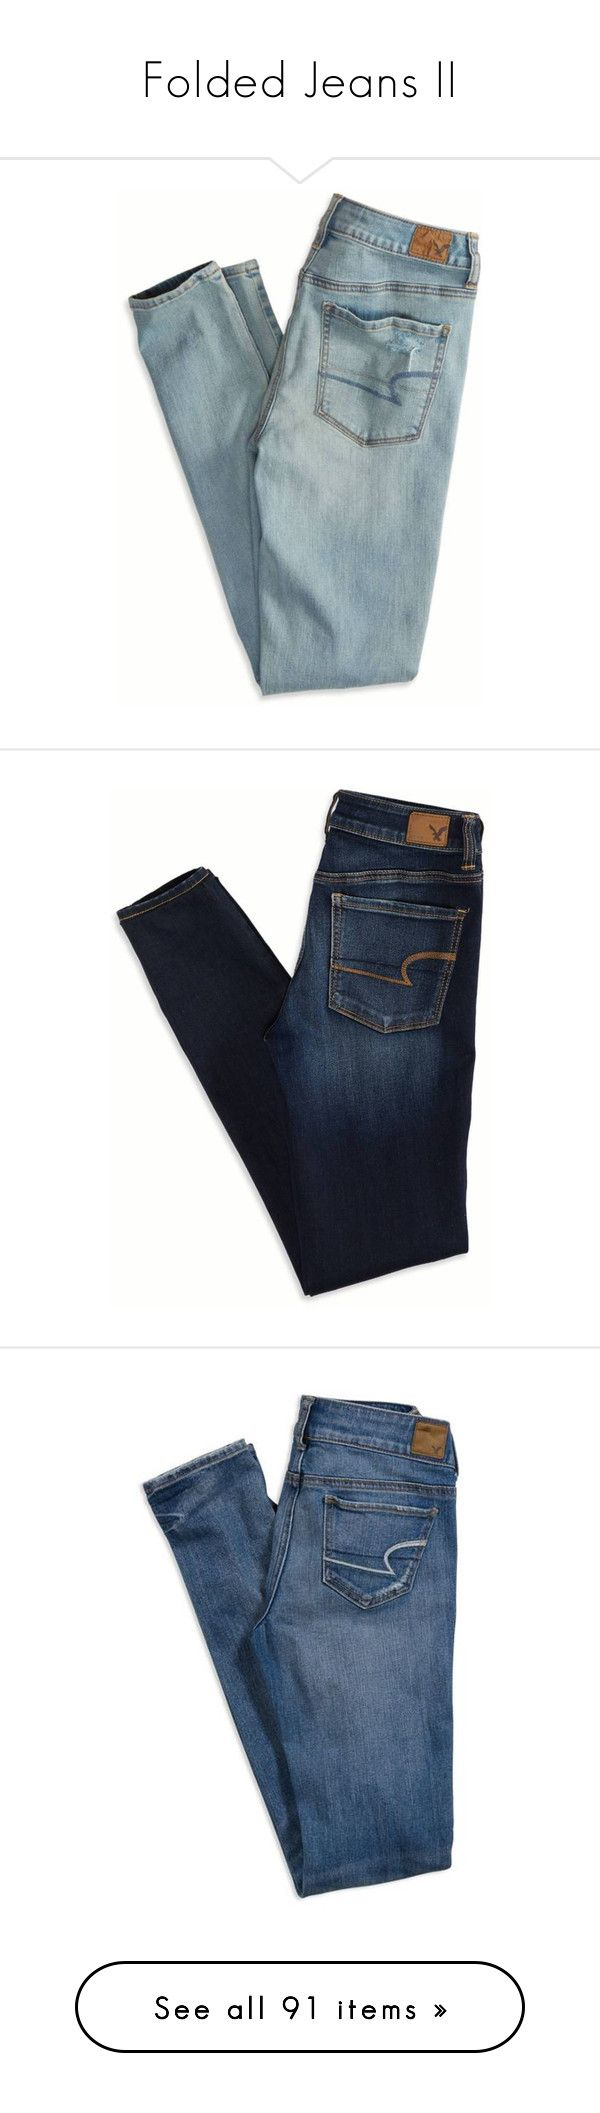 """Folded Jeans II"" by bitbyacullen ❤ liked on Polyvore featuring jeans, pants, bottoms, trousers, american eagle outfitters, folded, pantalones, blue skinny jeans, american eagle outfitters jeans and blue jeans"